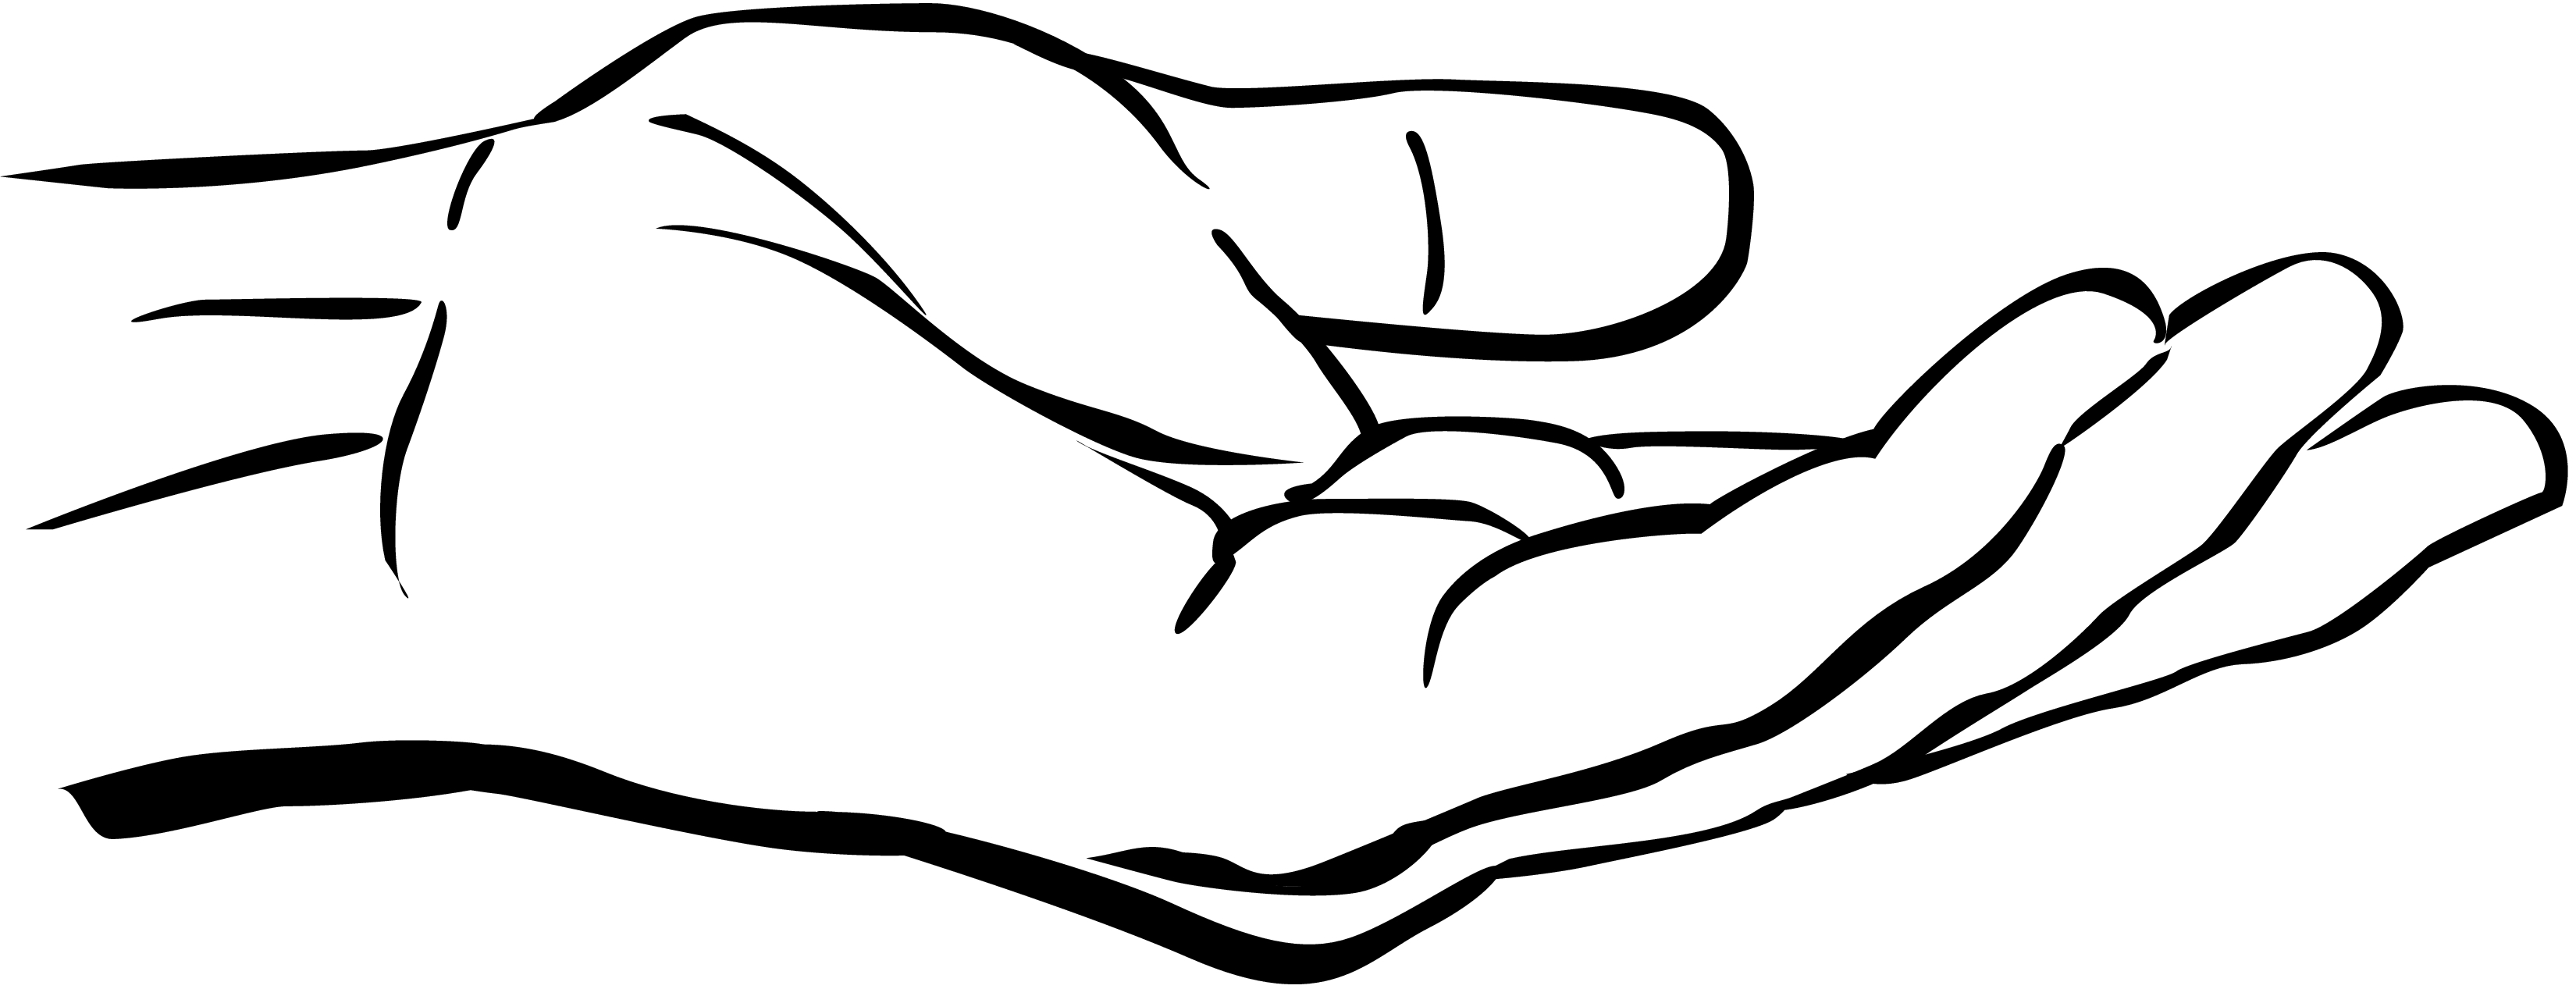 Hand clipart #6, Download drawings